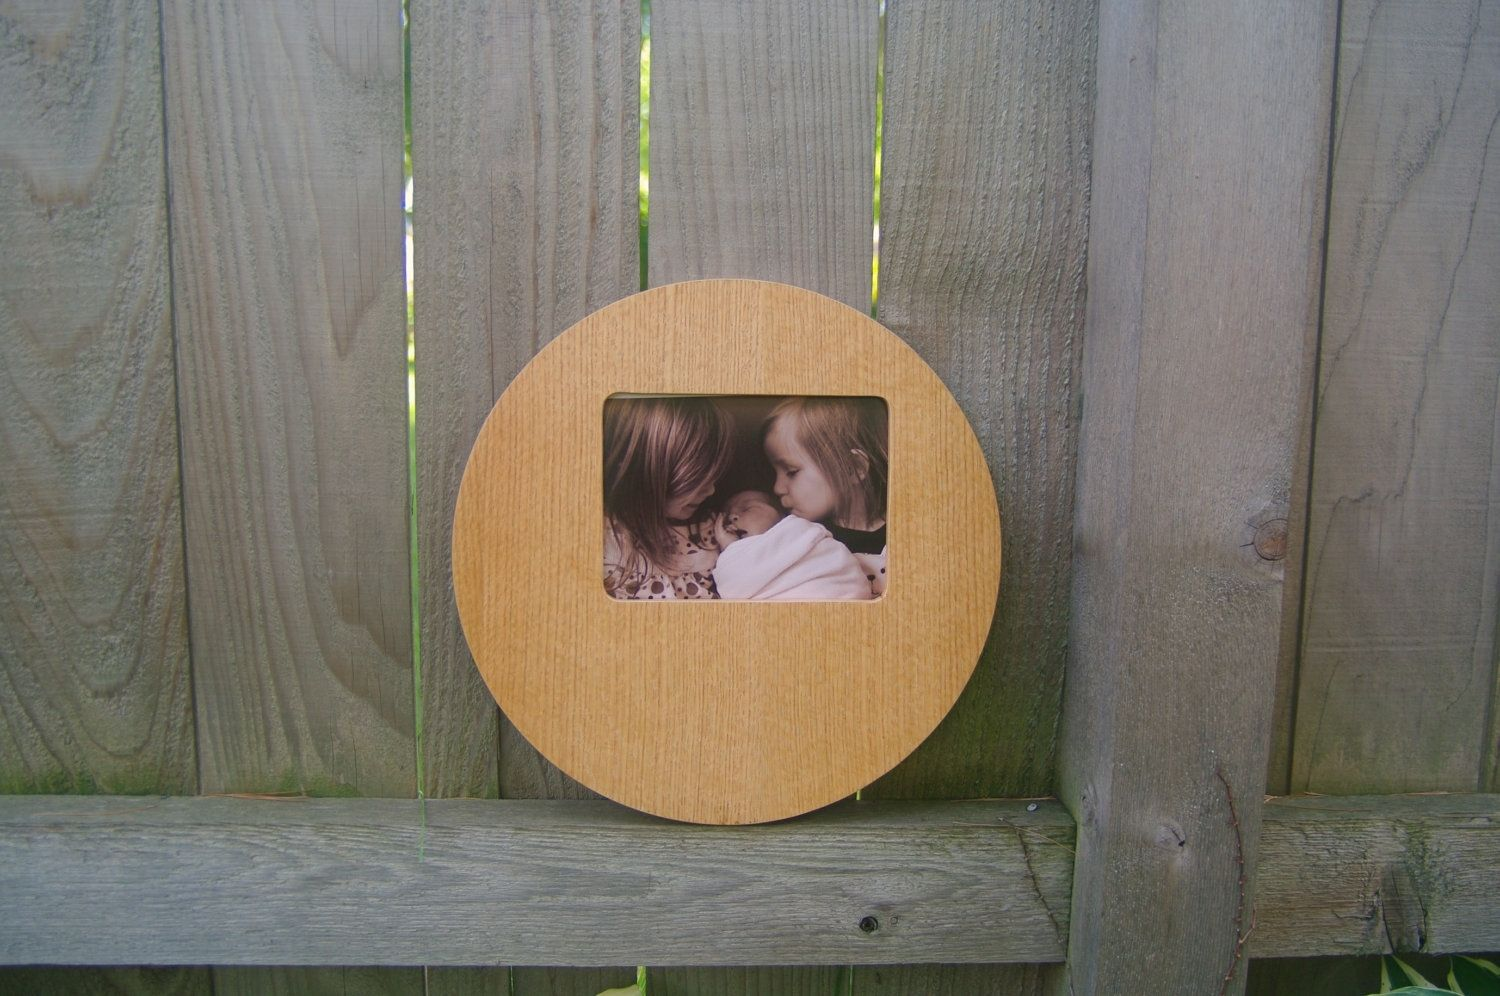 custom made round mid century modern picture frame wood white oak veneer 4x6 or 5x7